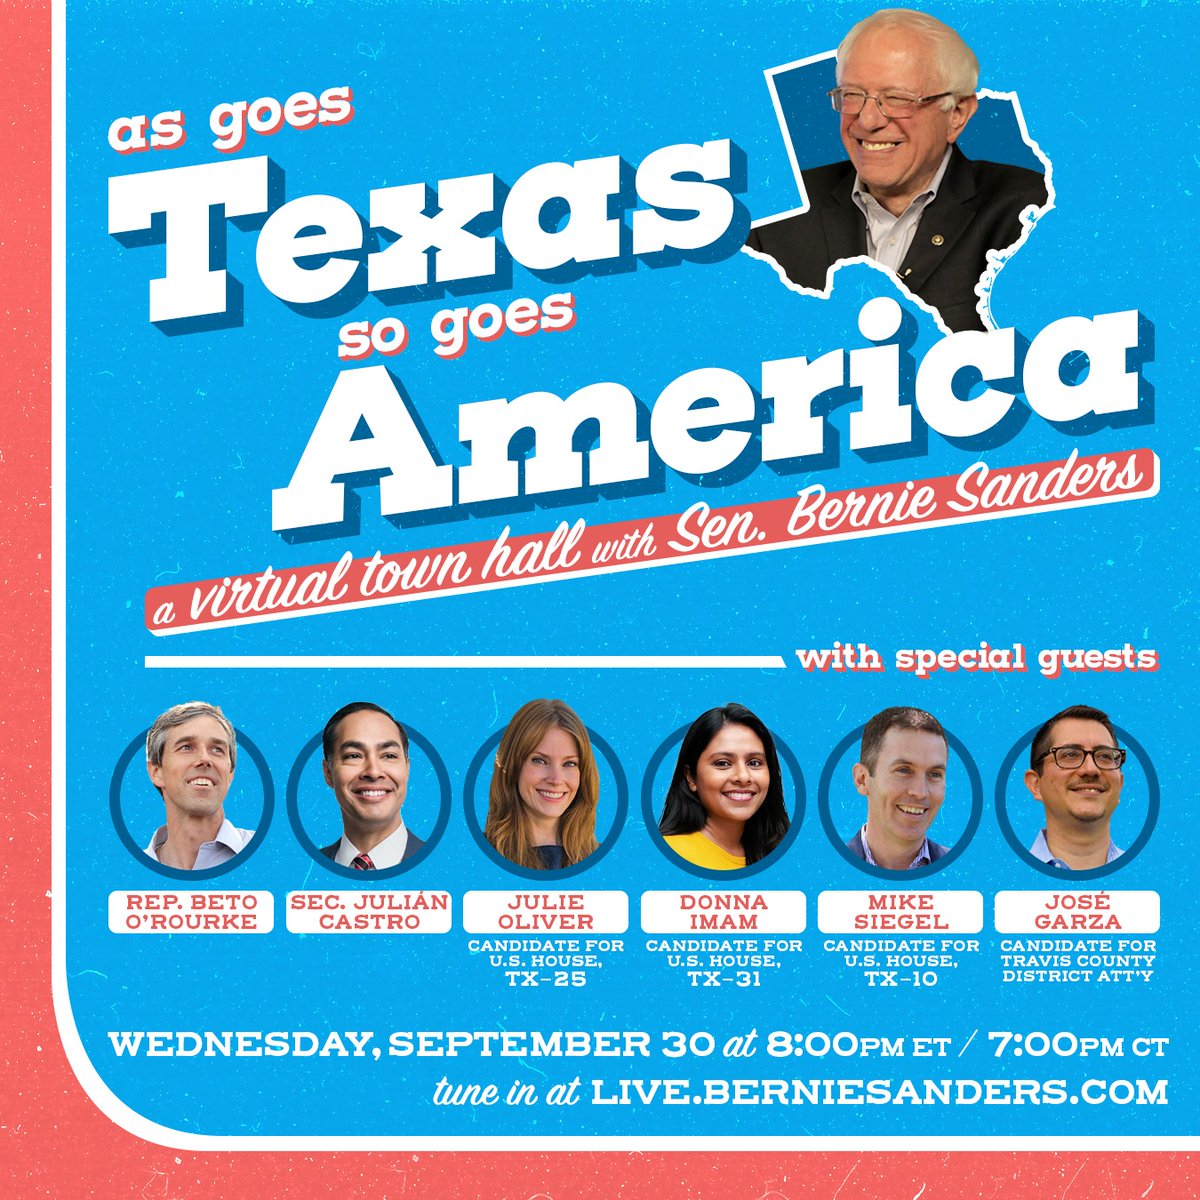 Really looking forward to this virtual town hall with @JulianCastro, @BetoORourke, @BernieSanders, and more about the positive change we're fighting for in Texas - healthcare, fairer taxes, good-paying jobs, justice, and how we can rebuild our economy.  Wednesday at 7pm CST! https://t.co/EXT8Ey8PIk